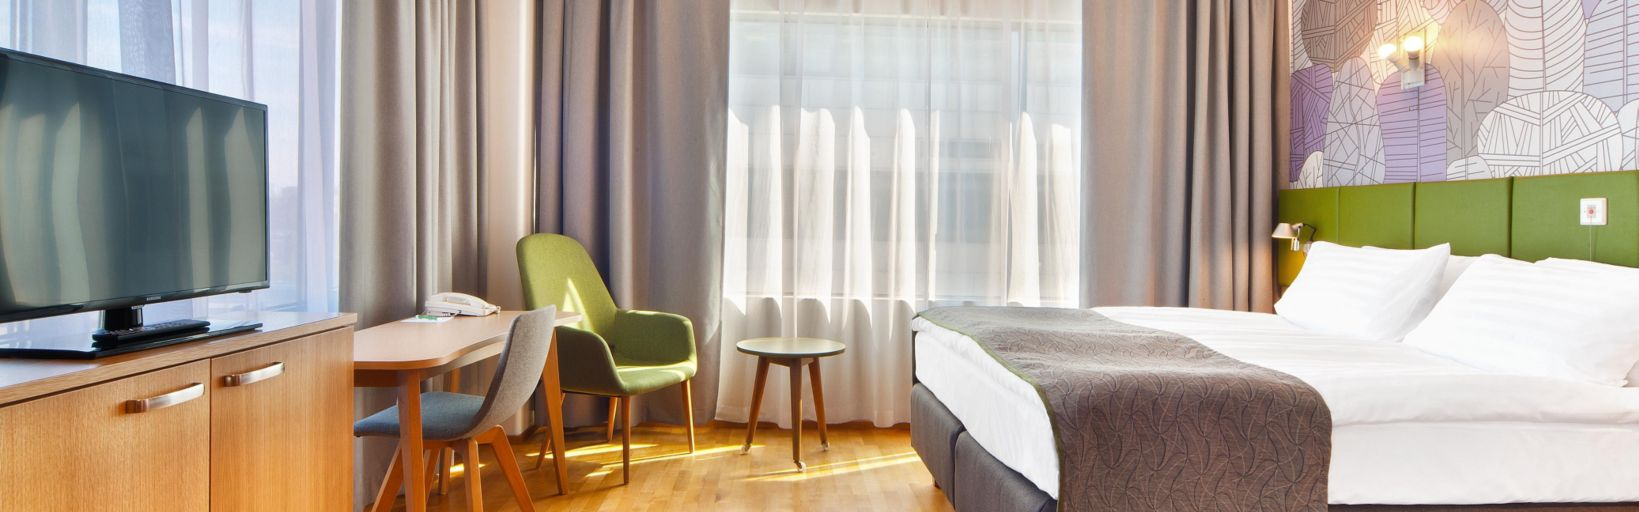 Номер в гостинице Holiday Inn City Center Helsinki